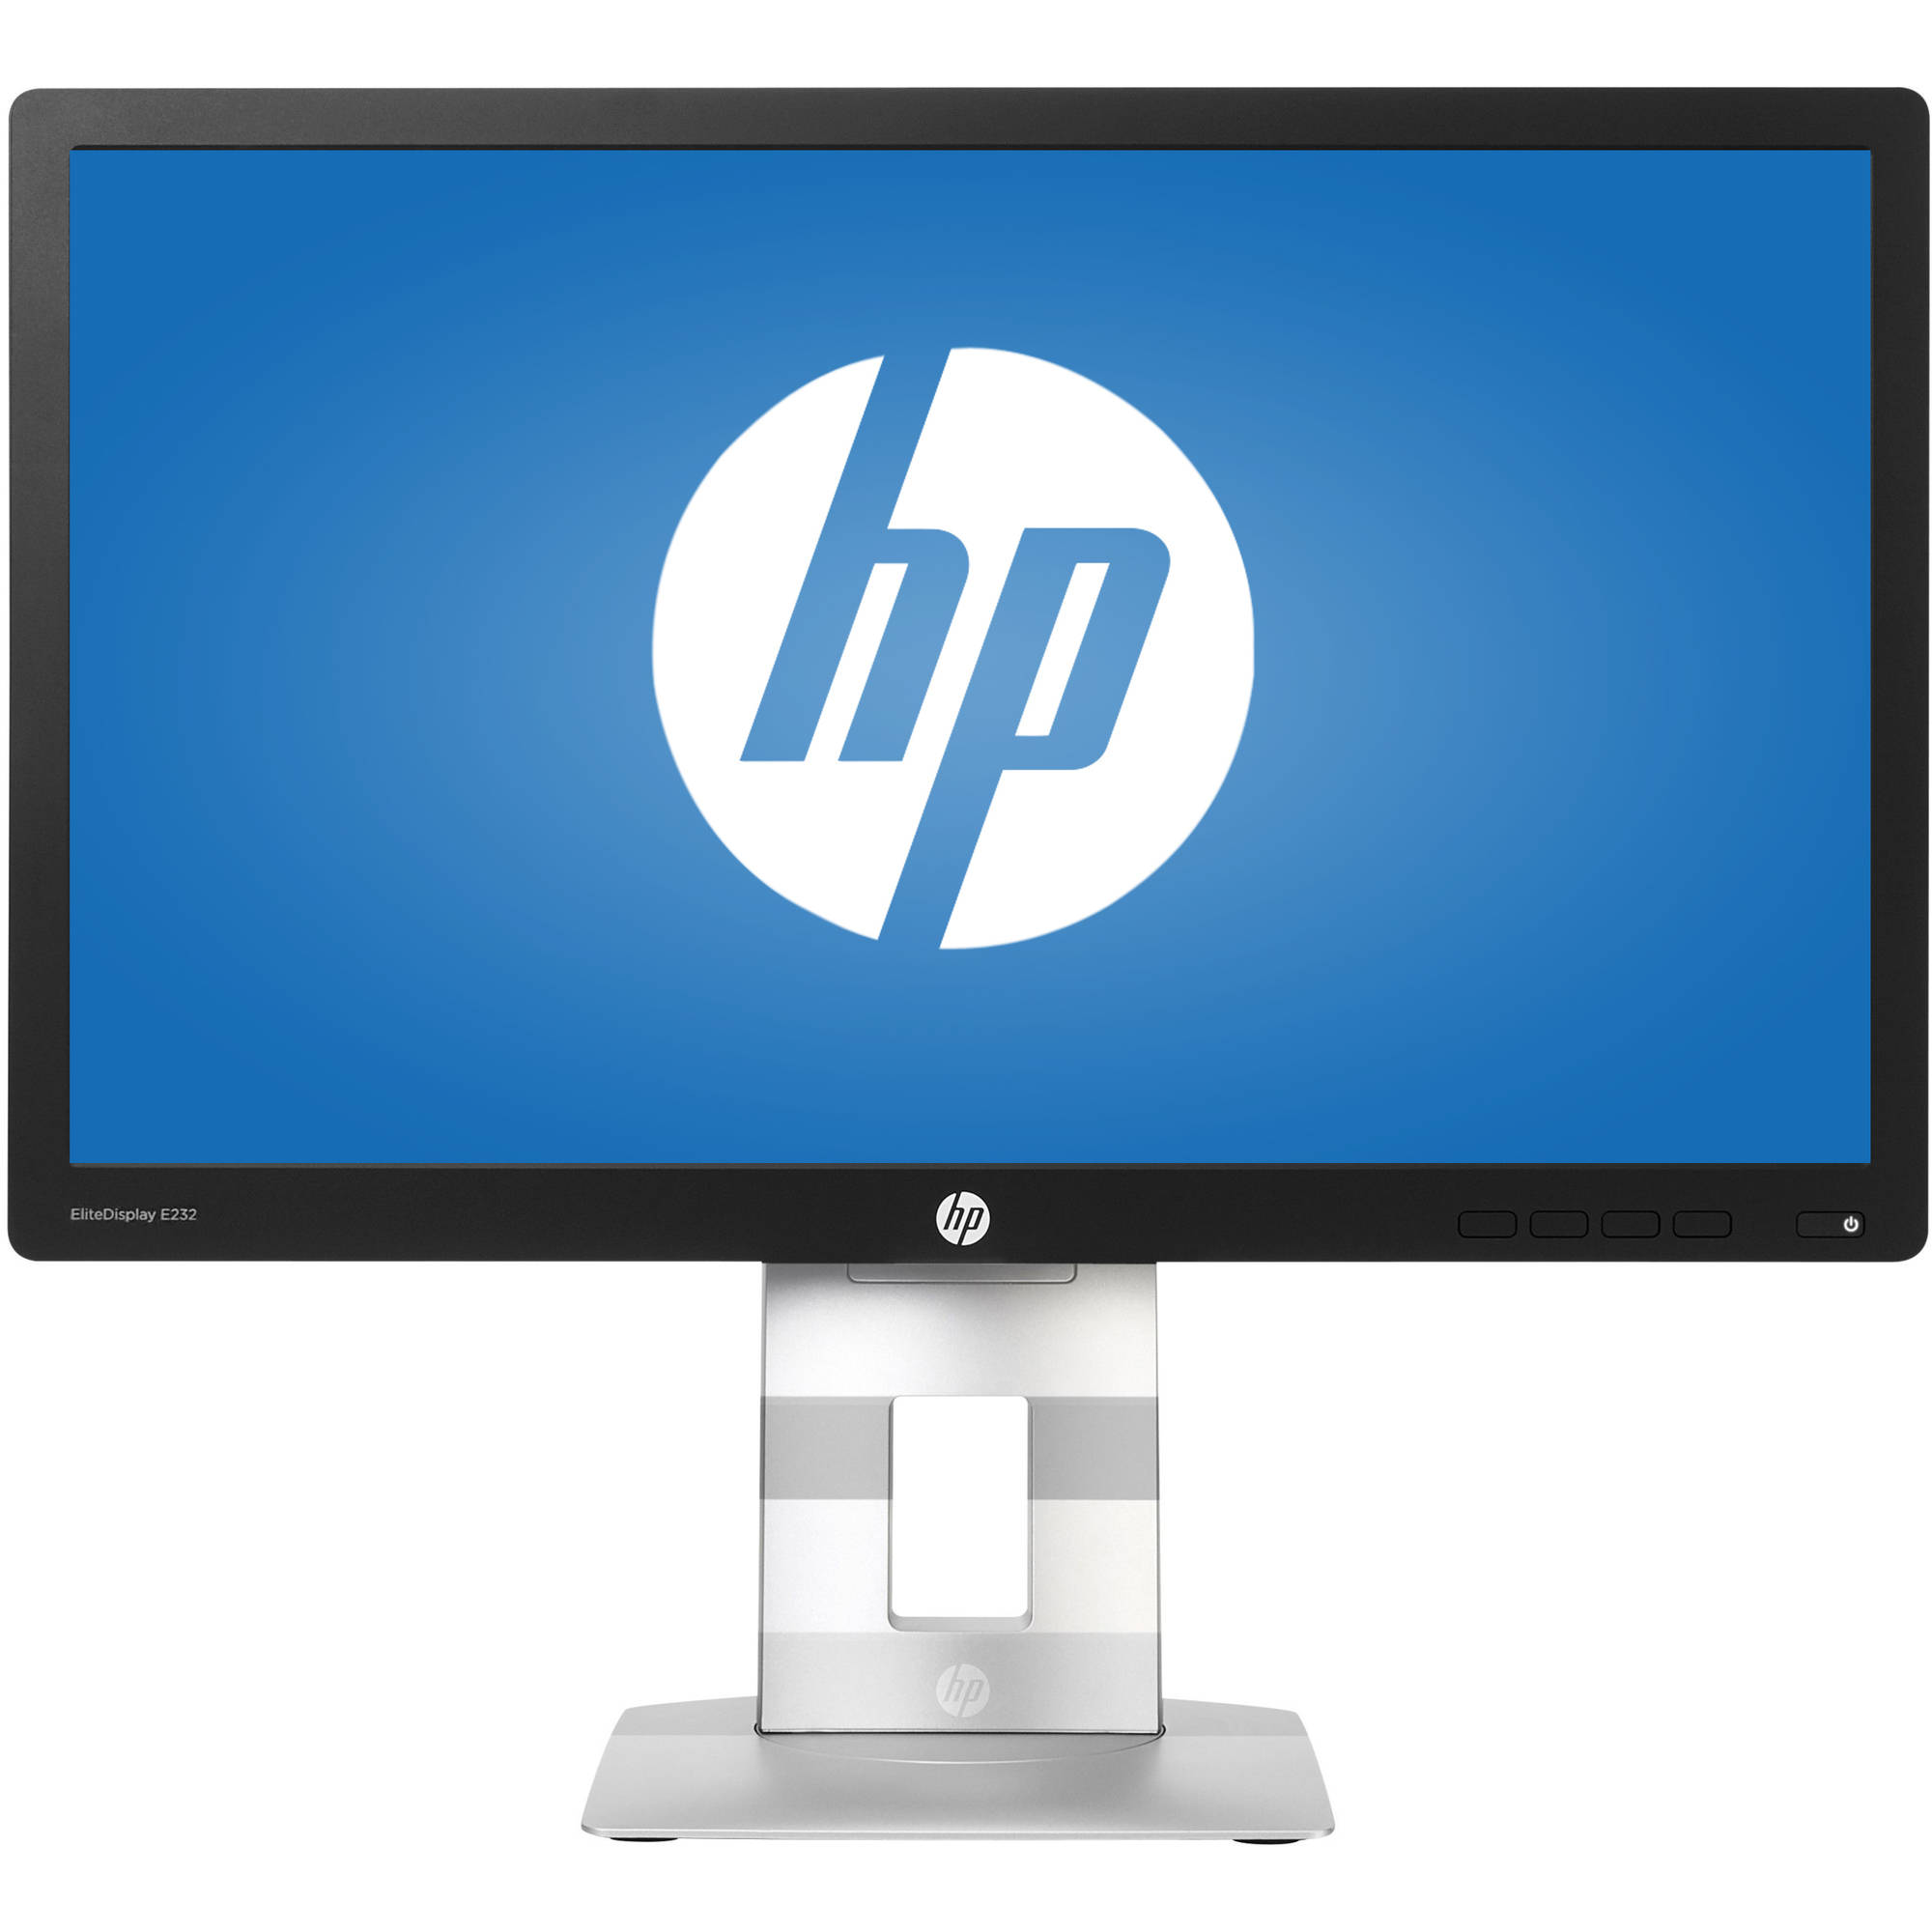 "HP EliteDesk 23"" LED LCD Widescreen Monitor (E232 Black)"